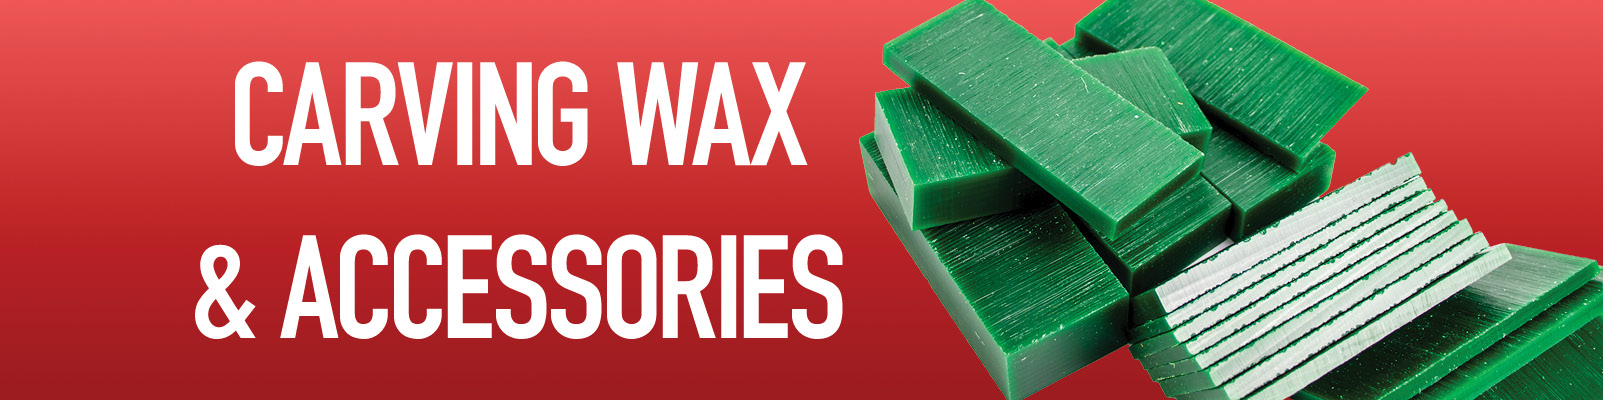 Carving Wax & Accessories